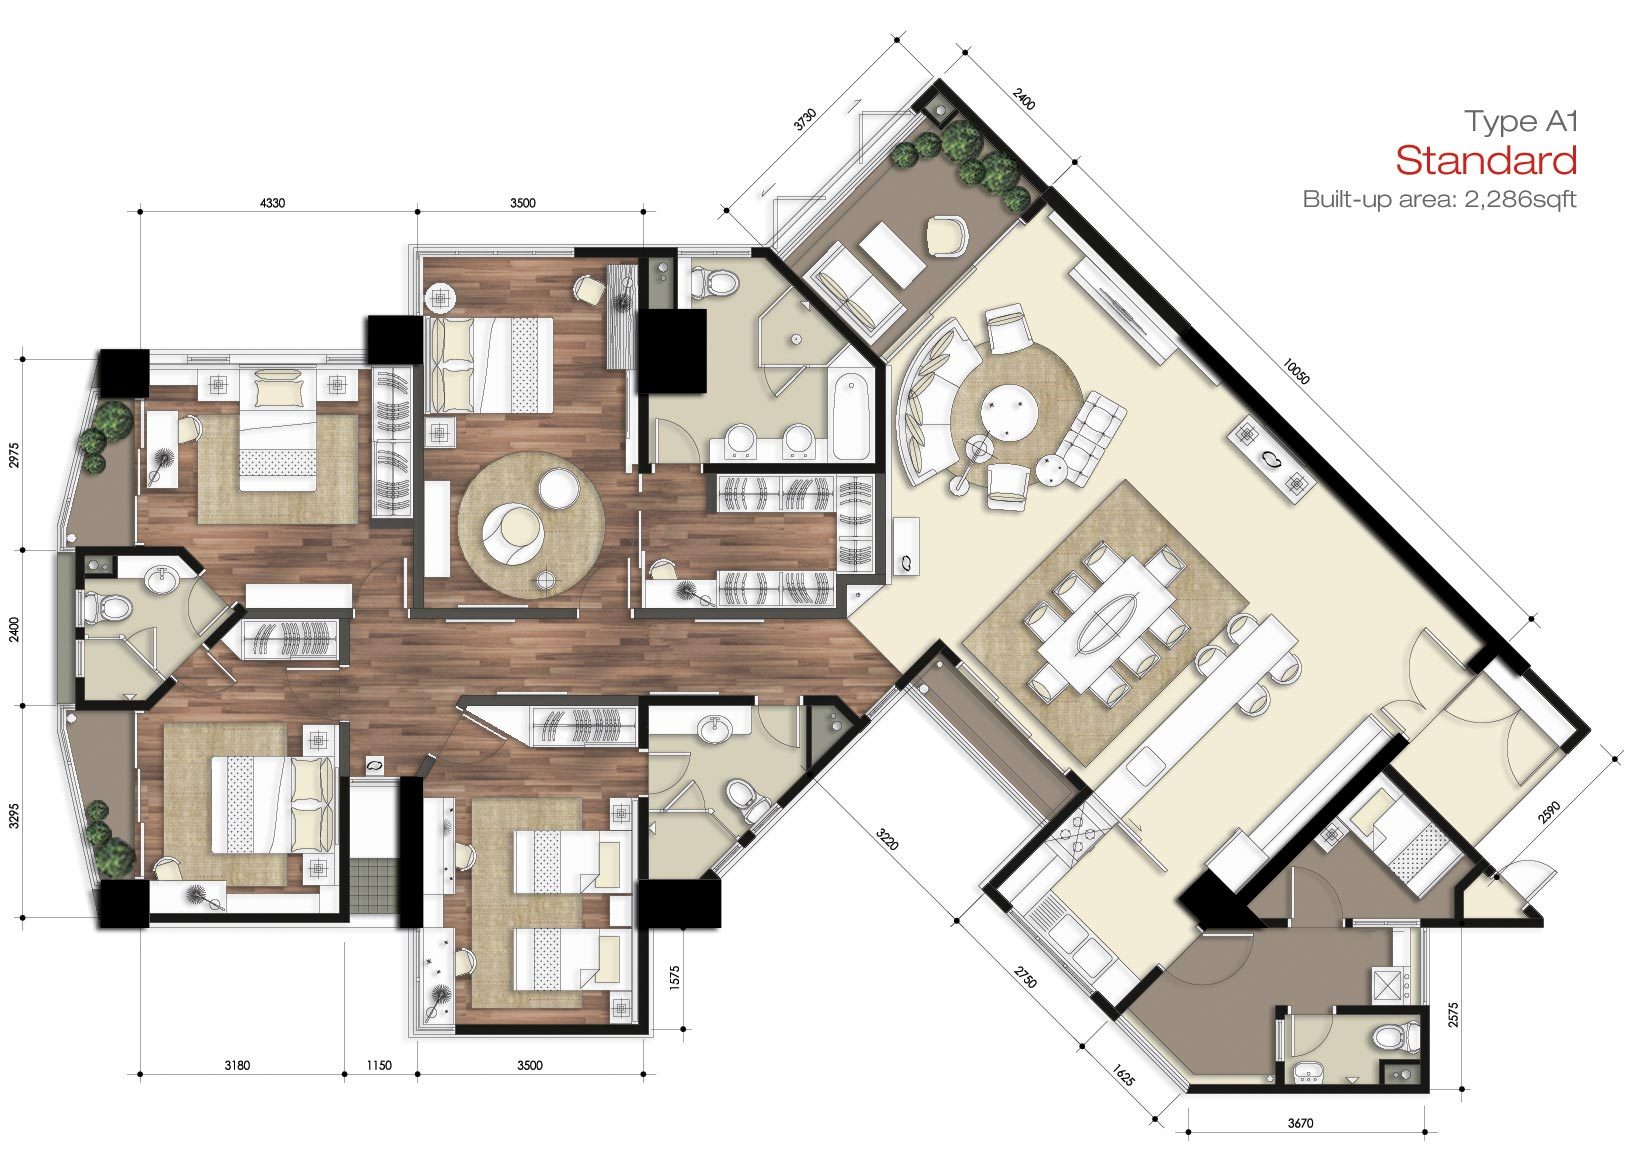 Small Guest House Floor Plans.html. Apartment Floor Plans, Smallest on modern house plans, house site plan, simple house plans, luxury home plans, small house plans, 2 story house plans, craftsman house plans, big luxury house plans, house exterior, house layout, house schematics, residential house plans, mediterranean house plans, colonial house plans, traditional house plans, house design, duplex house plans, house blueprints, bungalow house plans, country house plans,